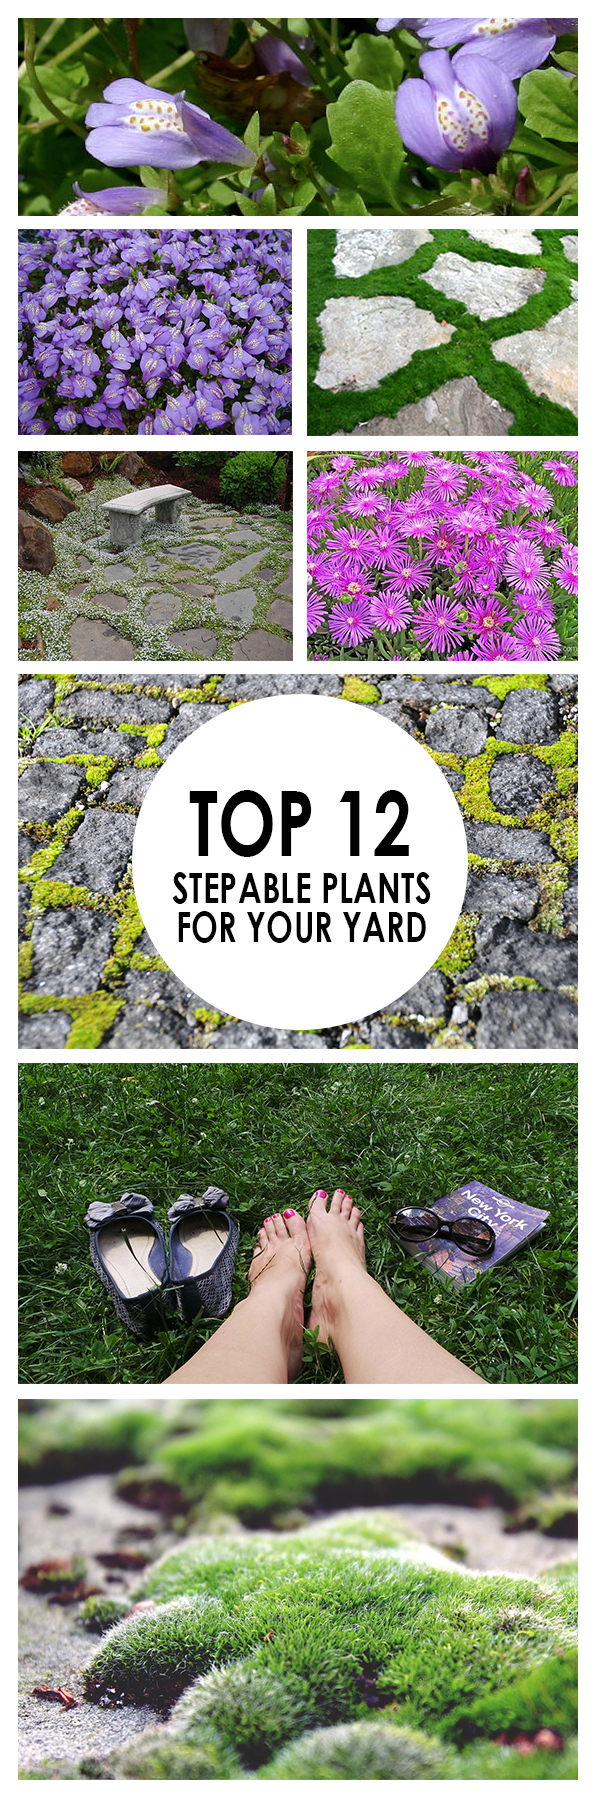 Top 12 Stepable Plants for Your Yard (1)